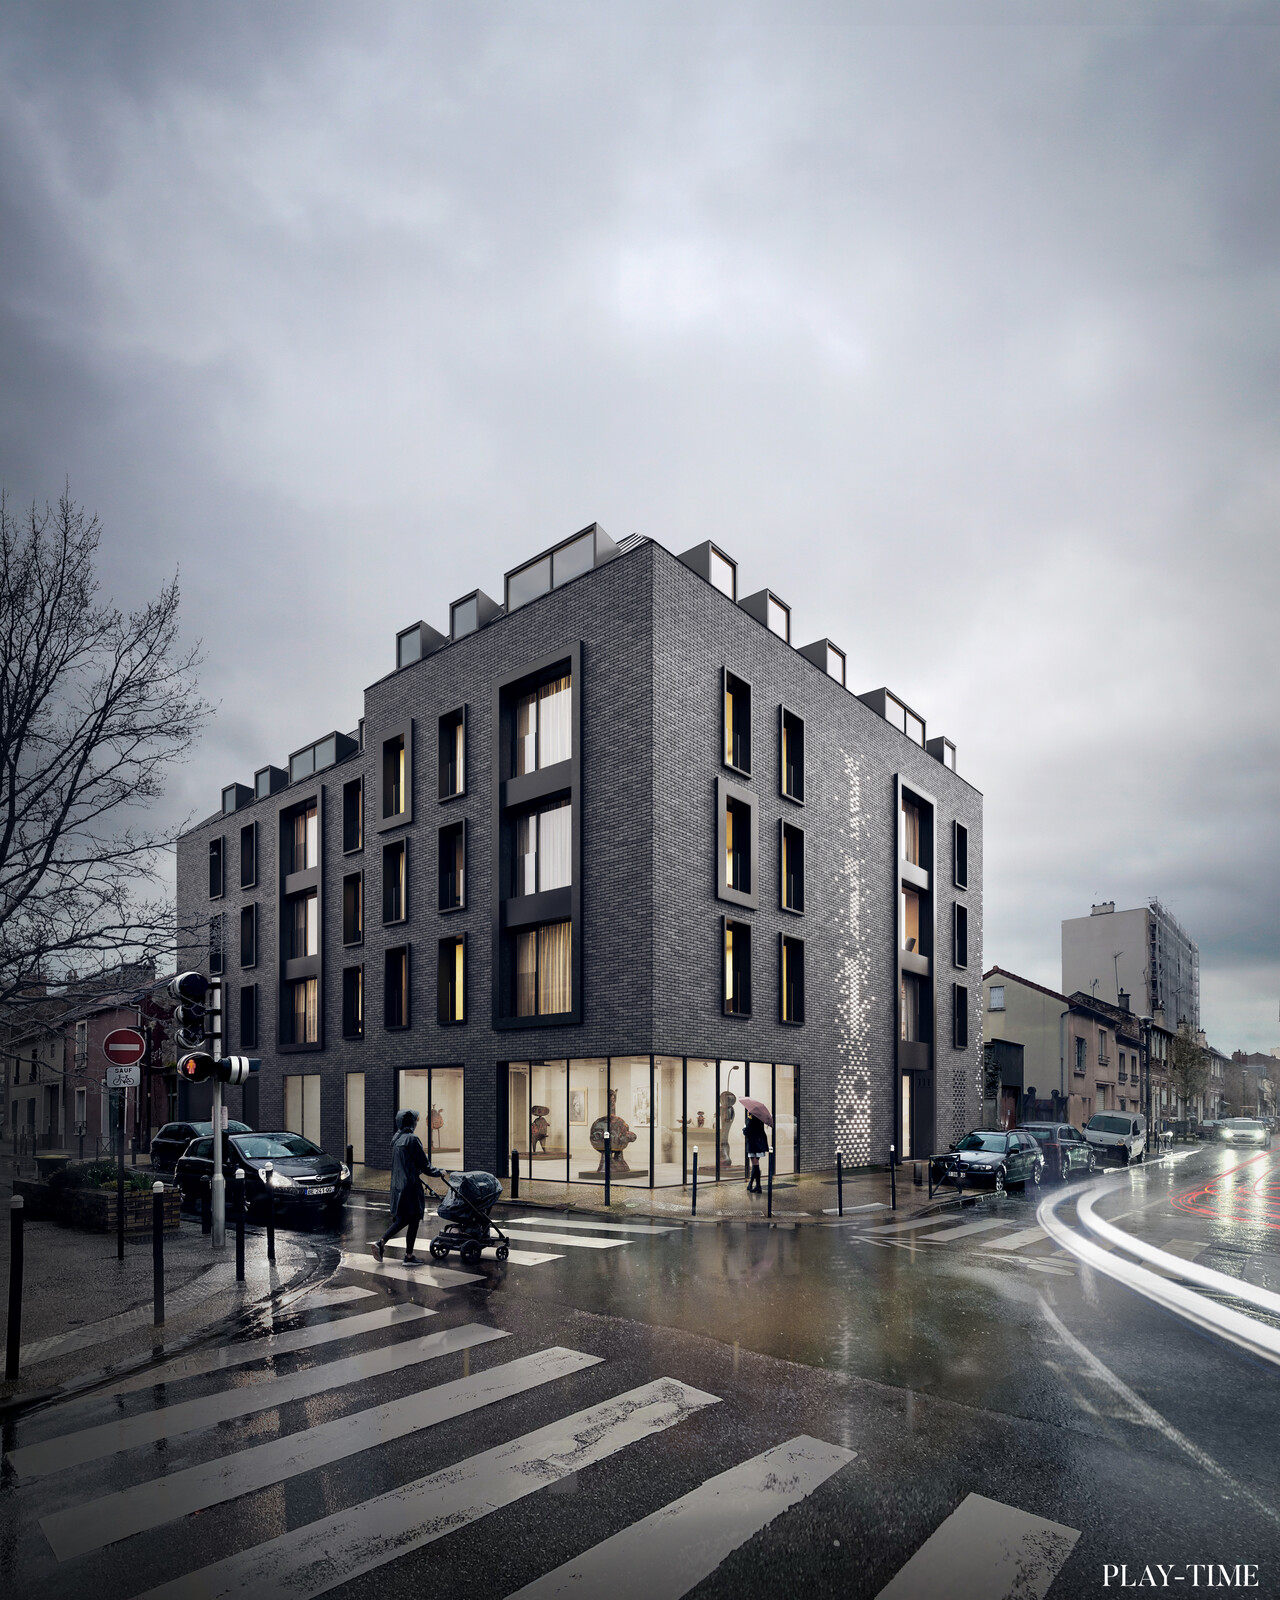 New 12 housing next to Paris designed by Studio Petra. Image by Play-time